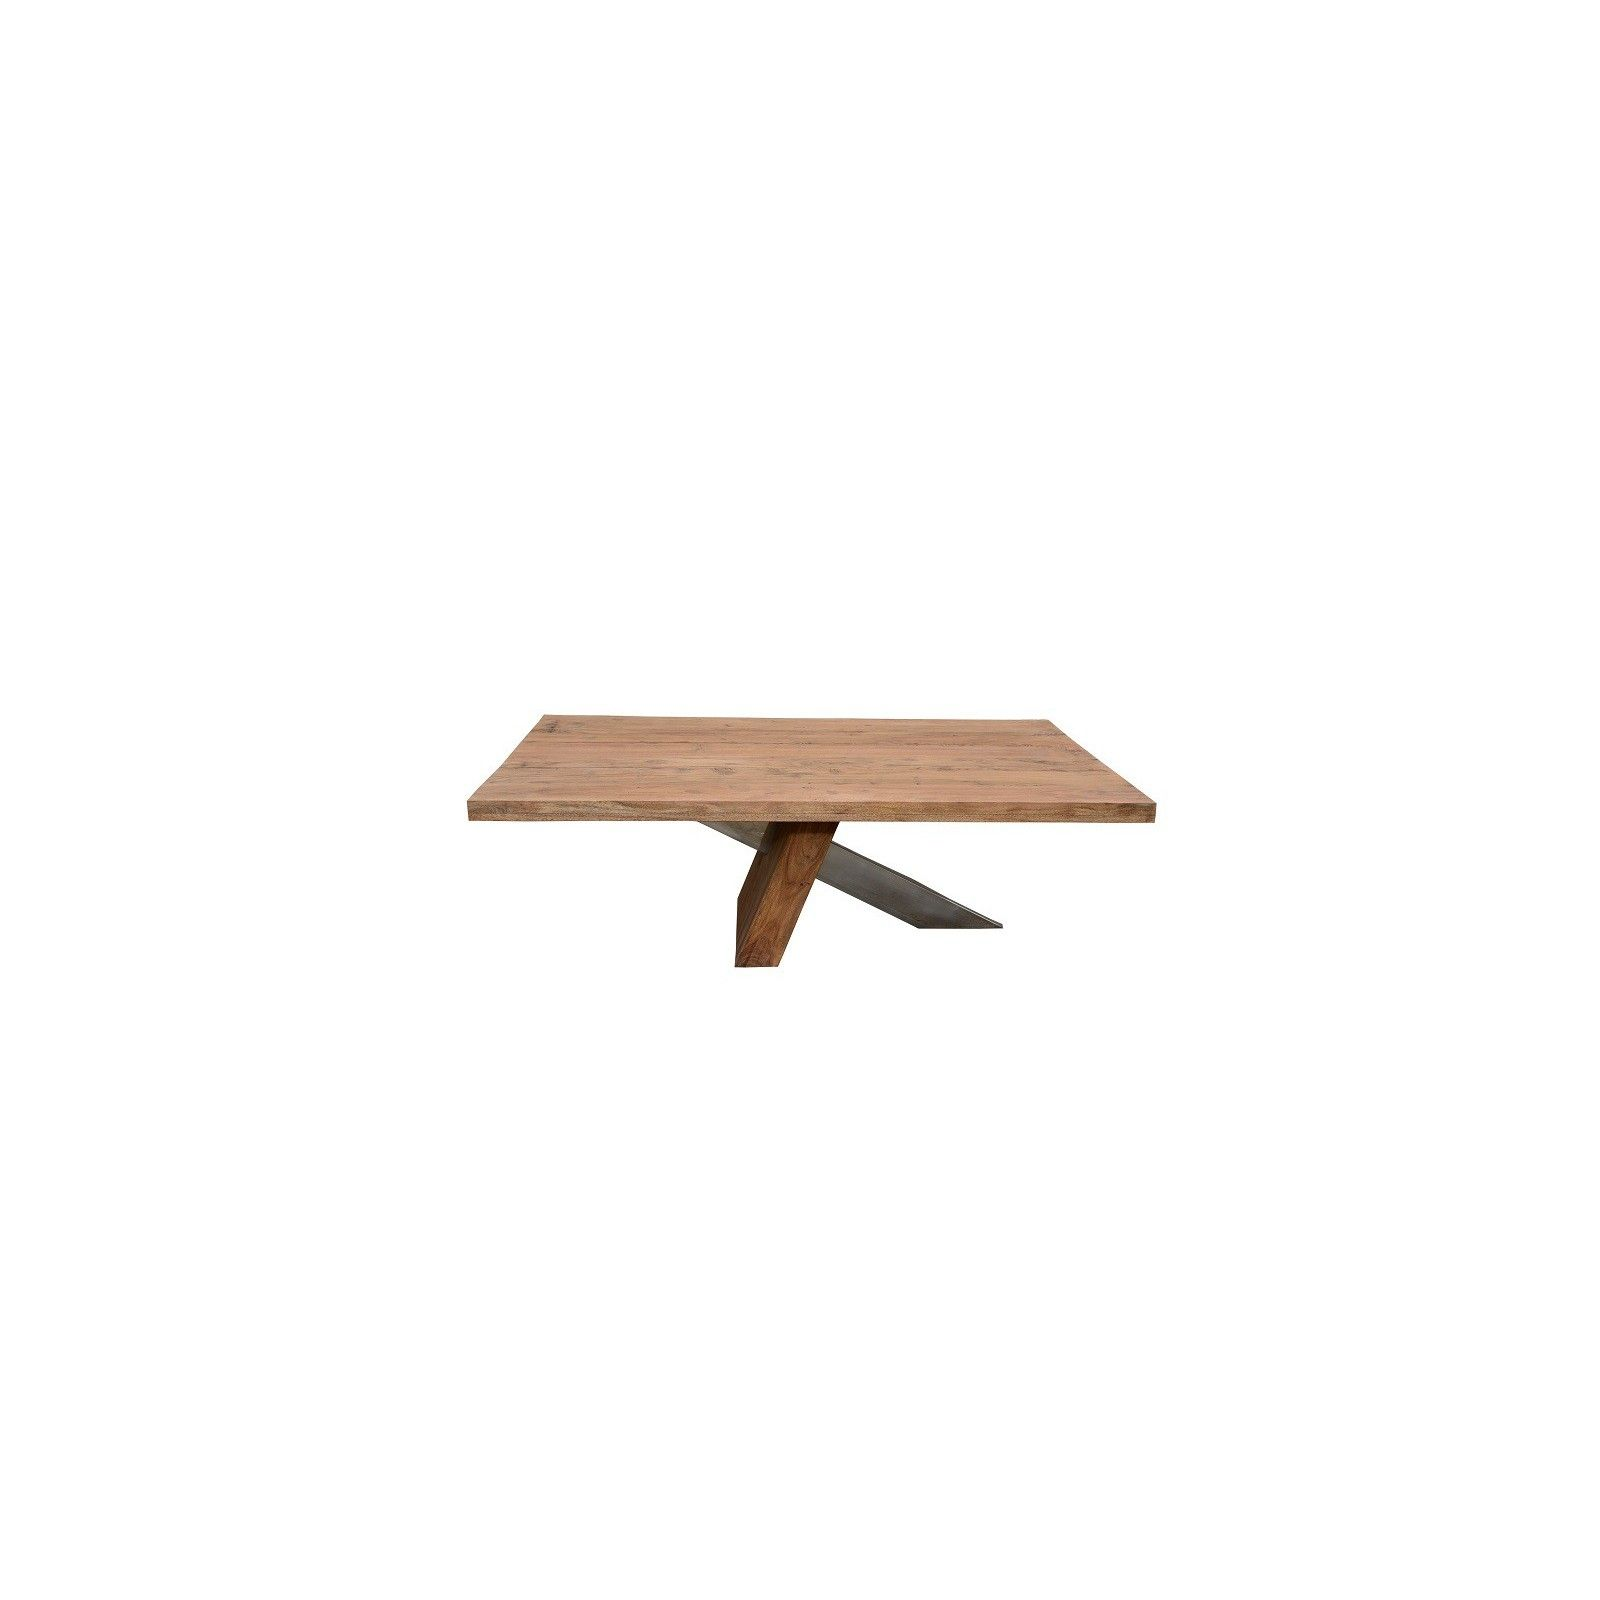 STAINLESS III TABLE BASSE PURE 130 x 80 Tables basses rectangulaires - 192